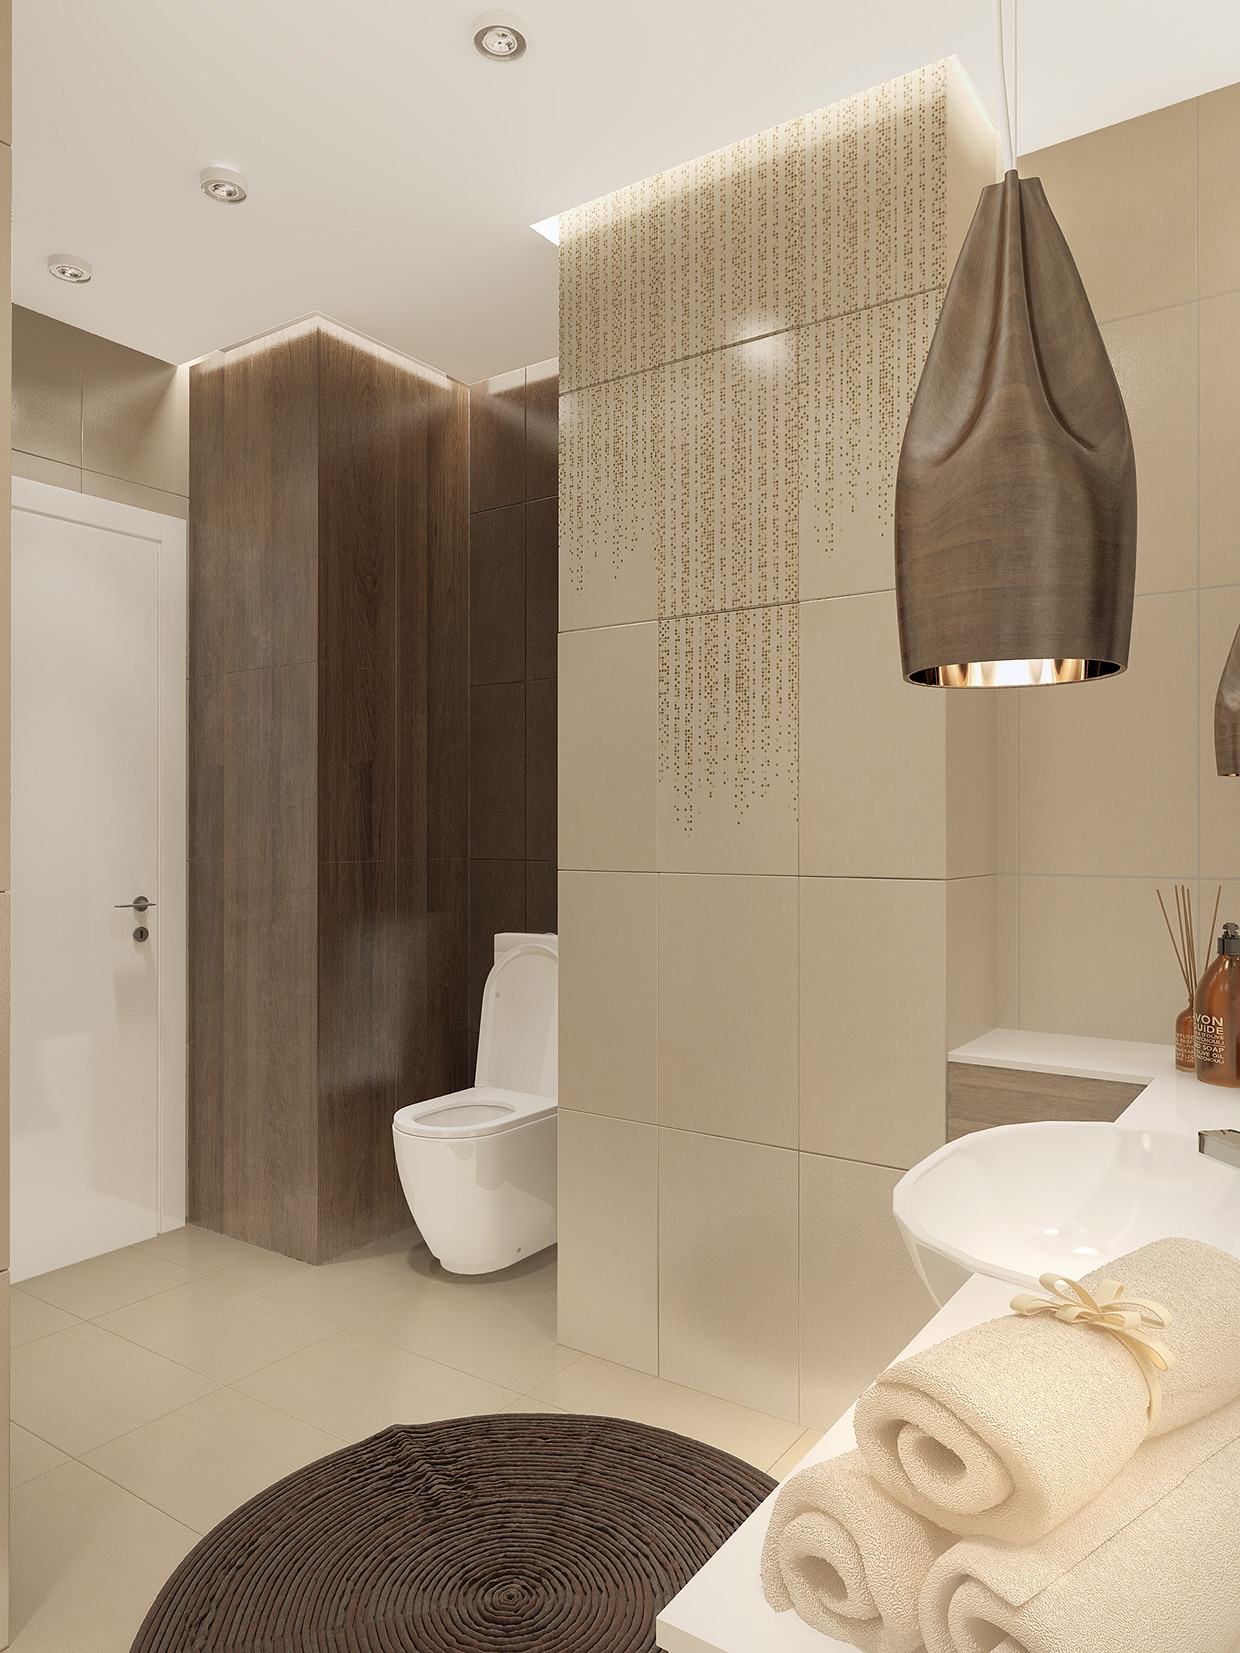 Cool bathroom lighting interior design ideas like architecture interior design follow us mozeypictures Image collections